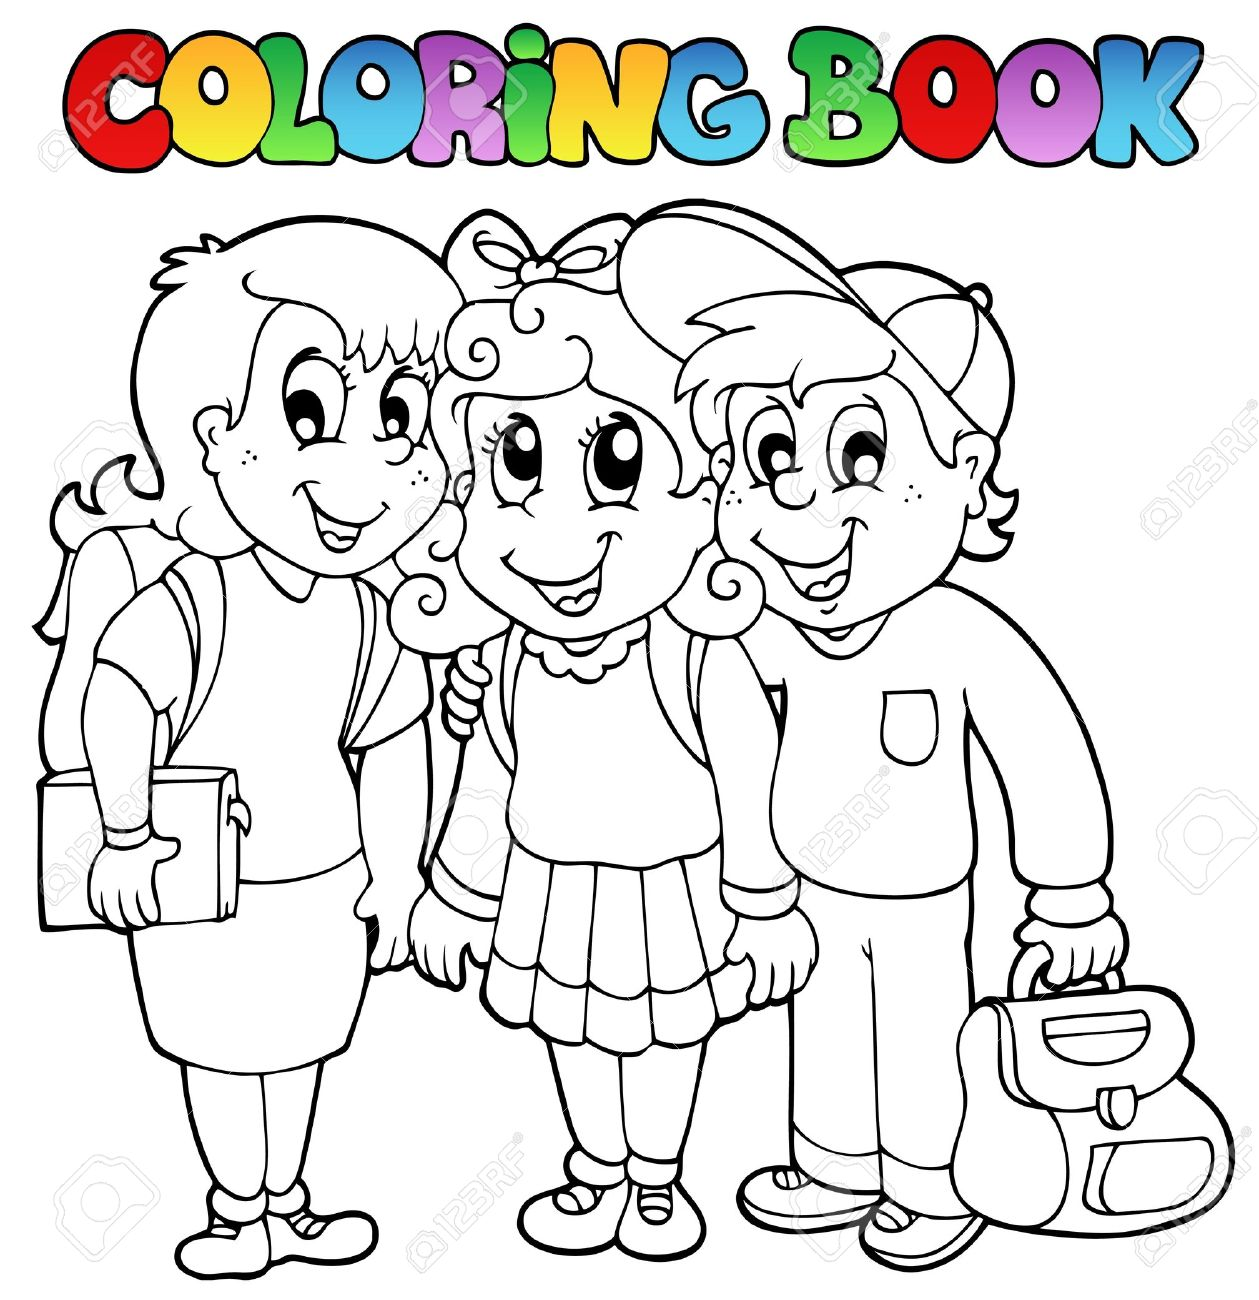 Coloring book school - Coloring Book School Cartoons Stock Vector 10354160